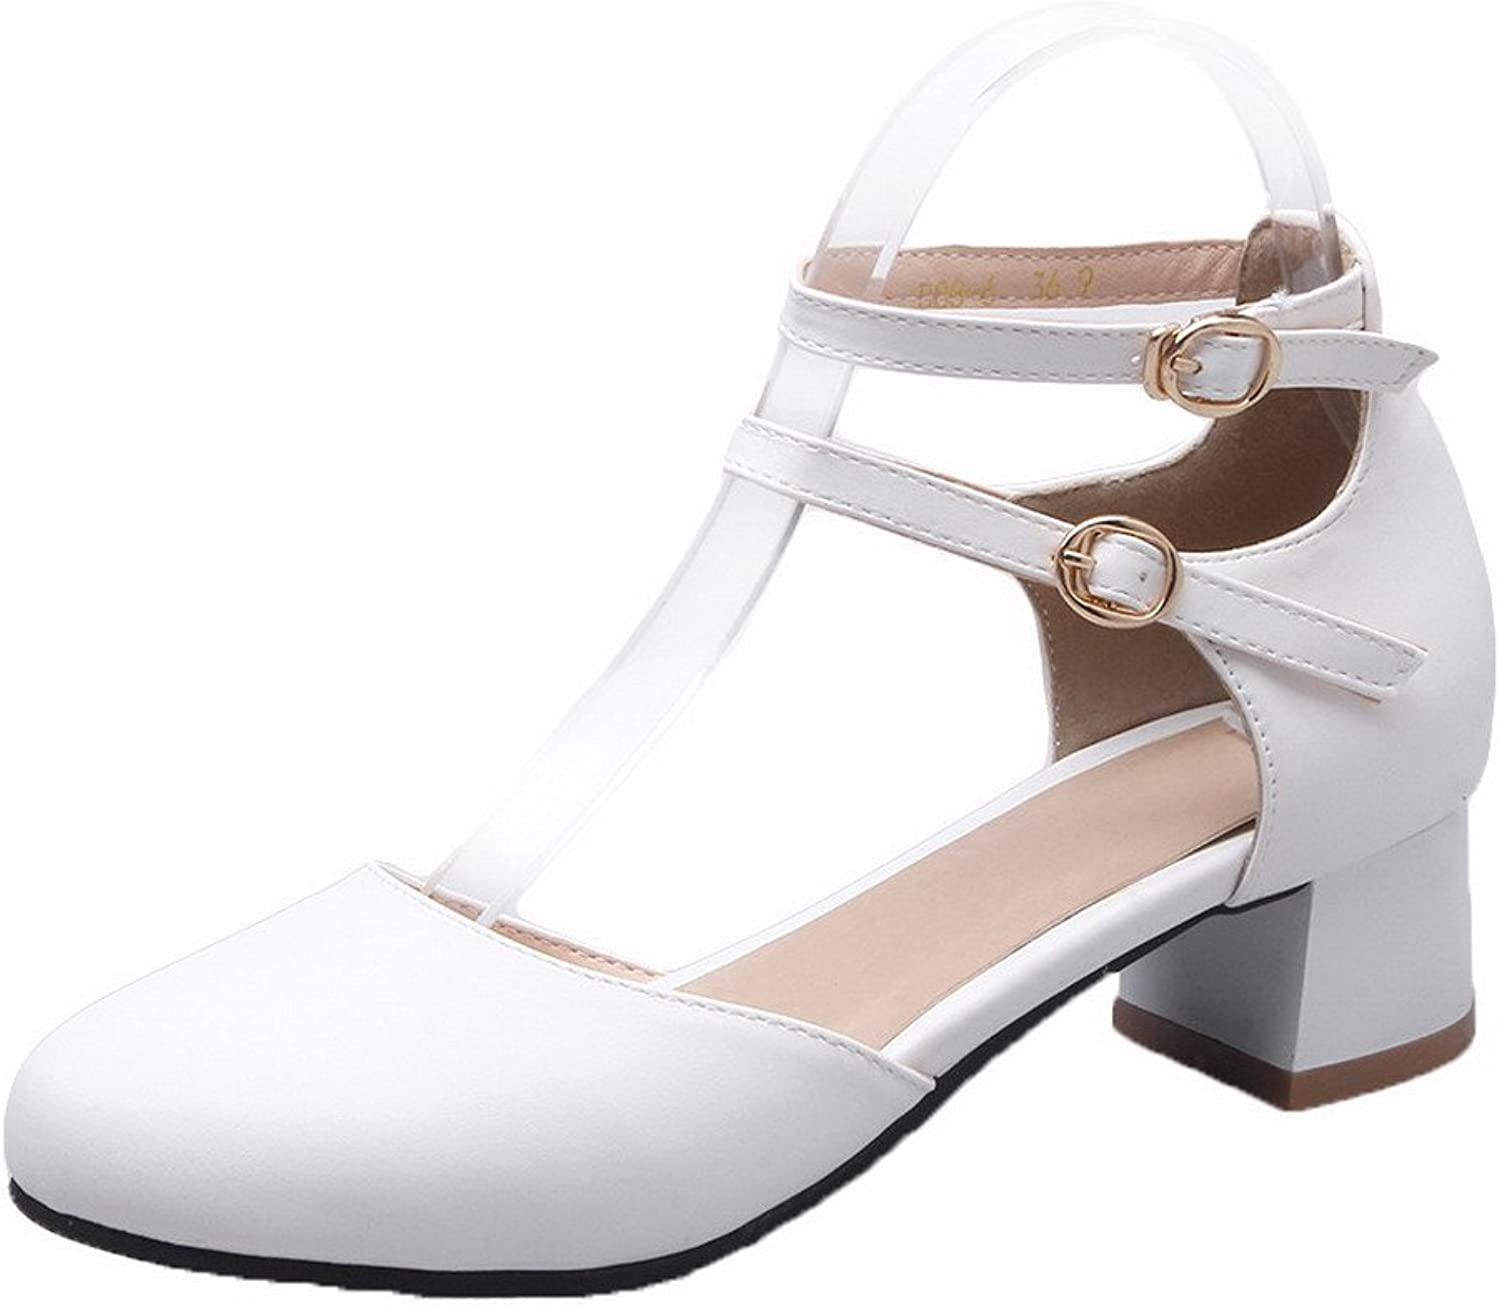 WeenFashion Women's Round-Toe Low-Heels Soft Material Solid Buckle Pumps-shoes